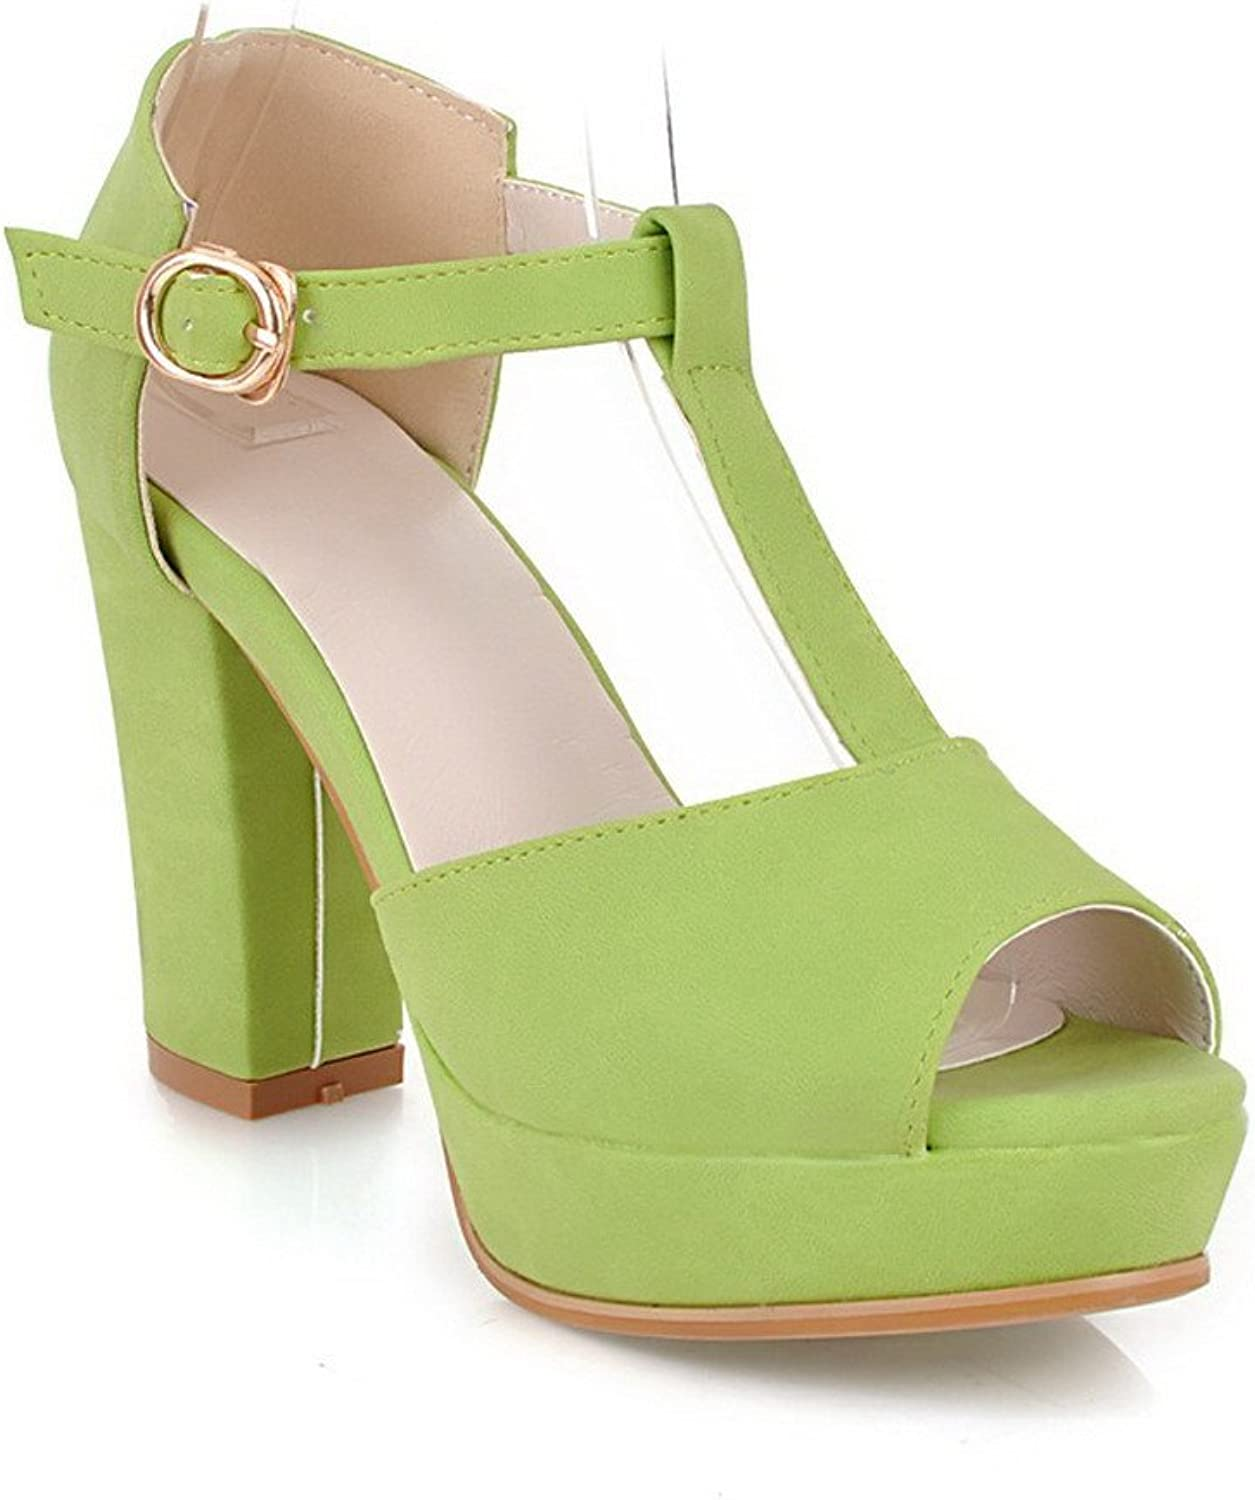 AmoonyFashion Girls Open Peep Toes High Heel Chunky Platform Soft Material PU Solid Sandals with T-strap, Green, 7.5 B(M) US